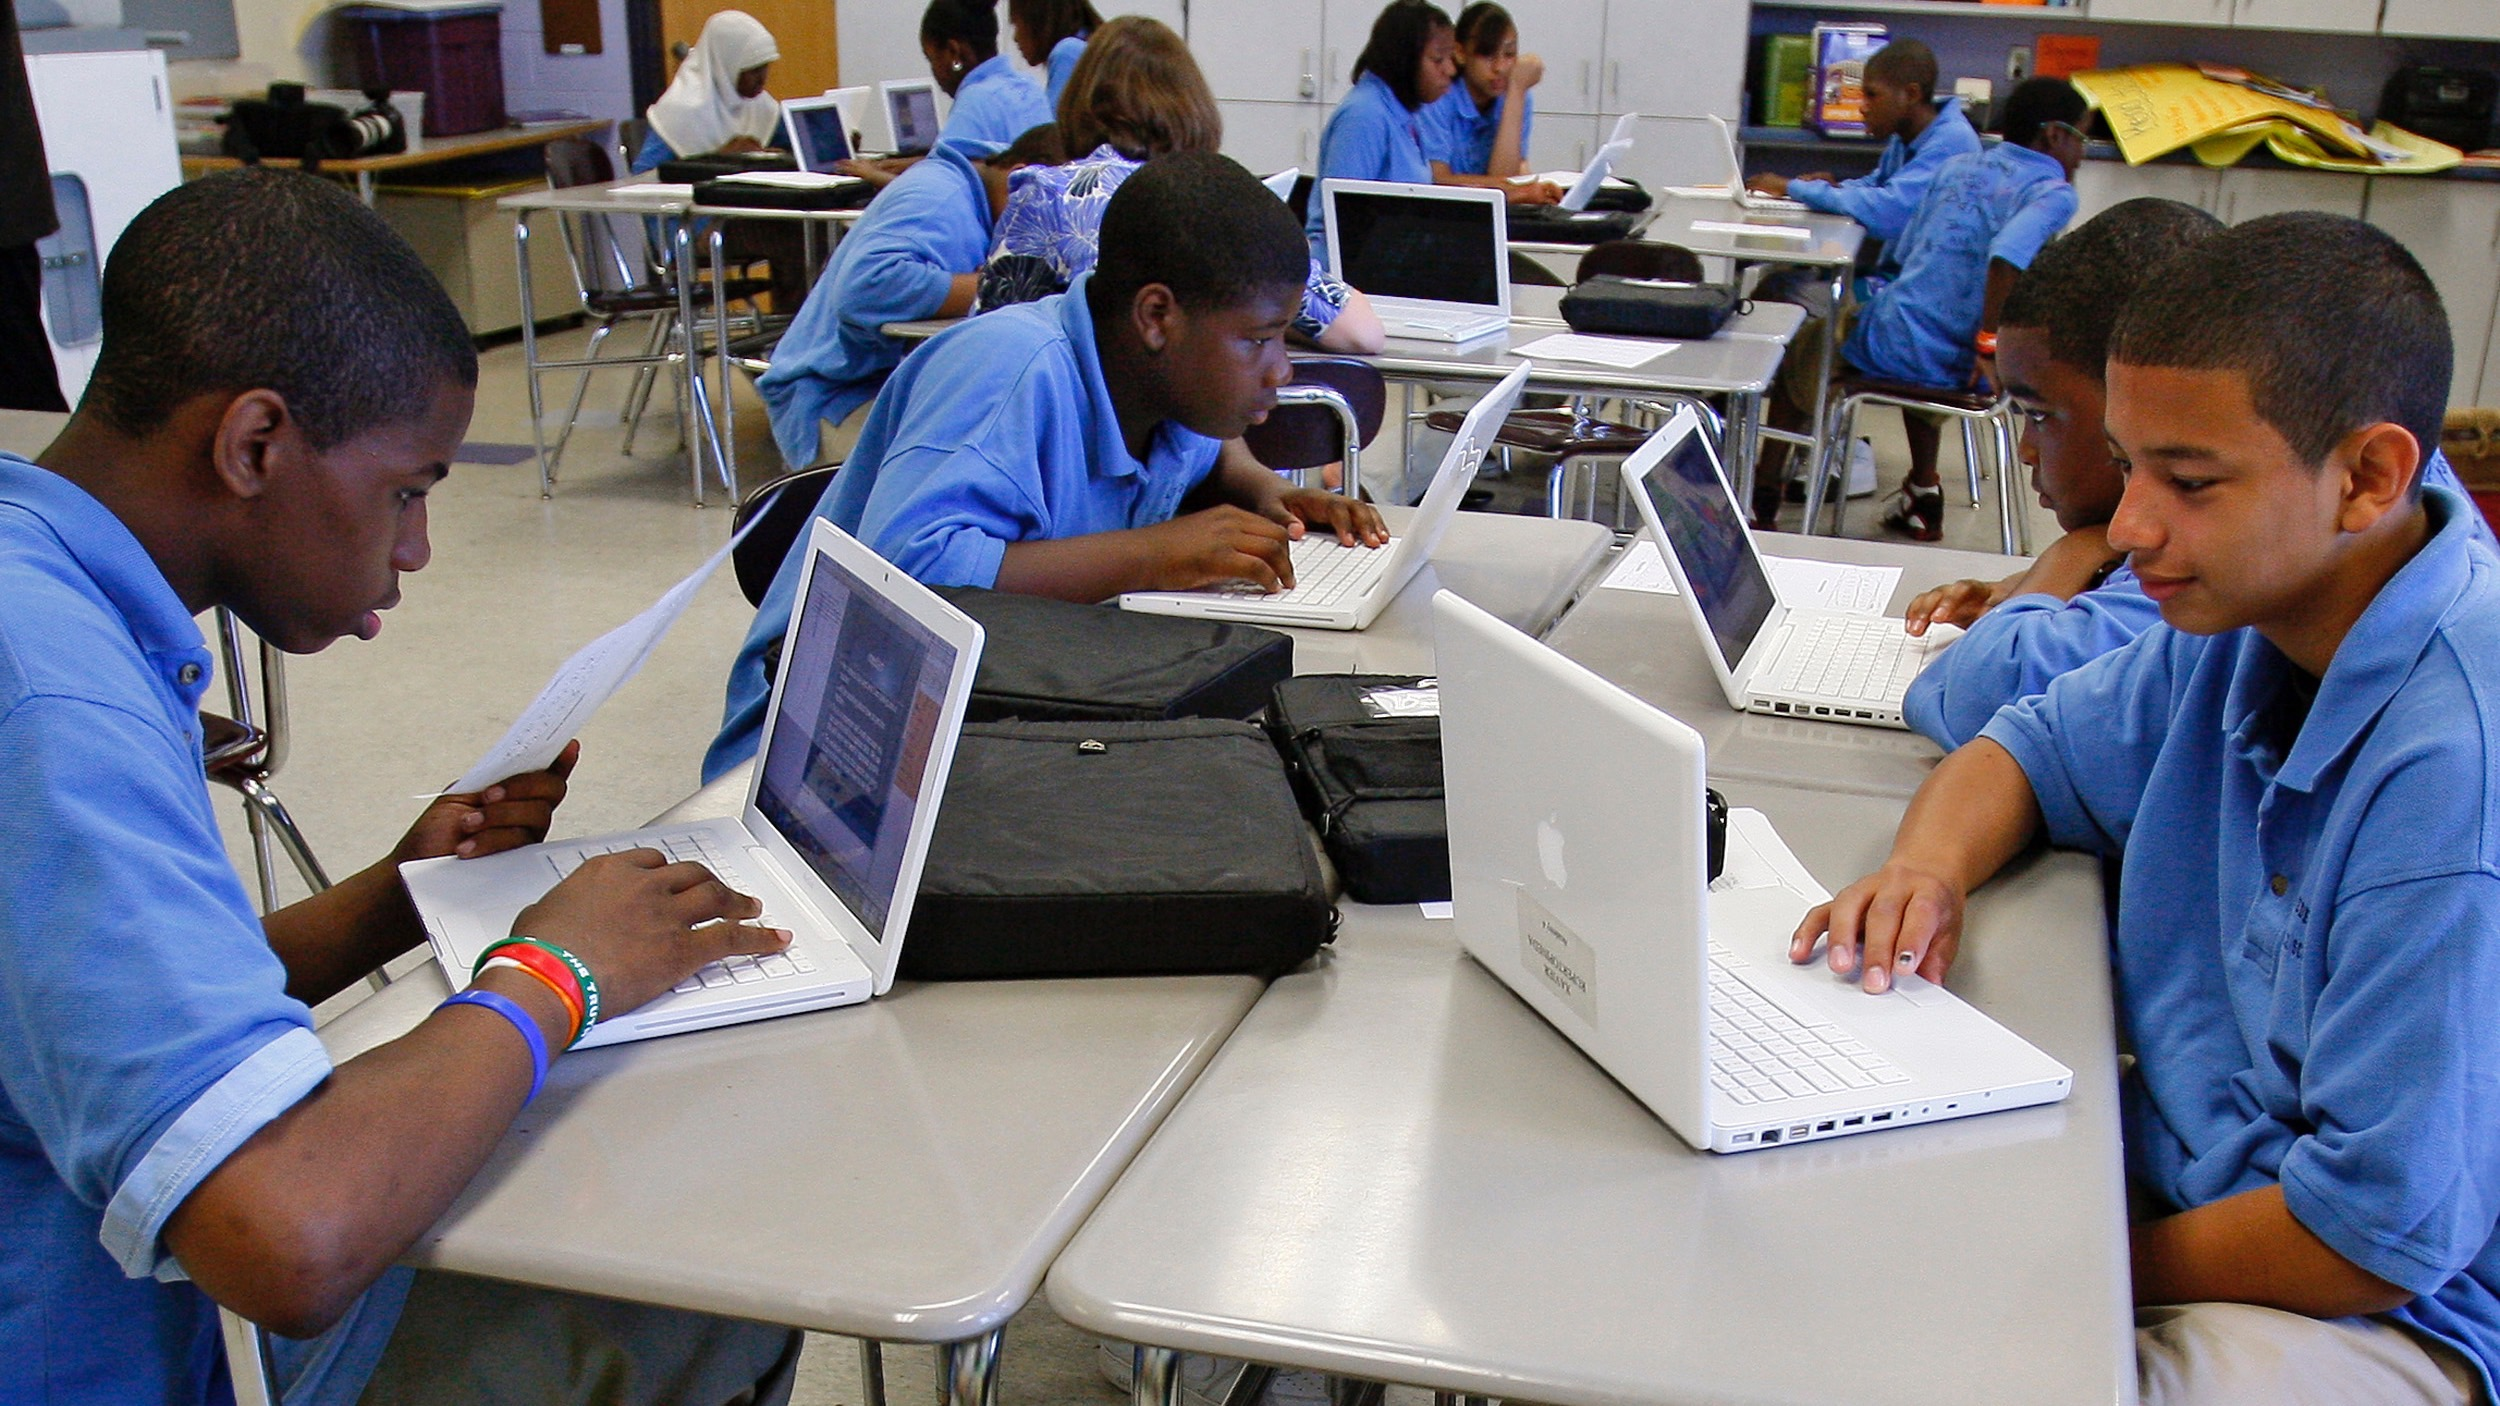 children in classroom with computers